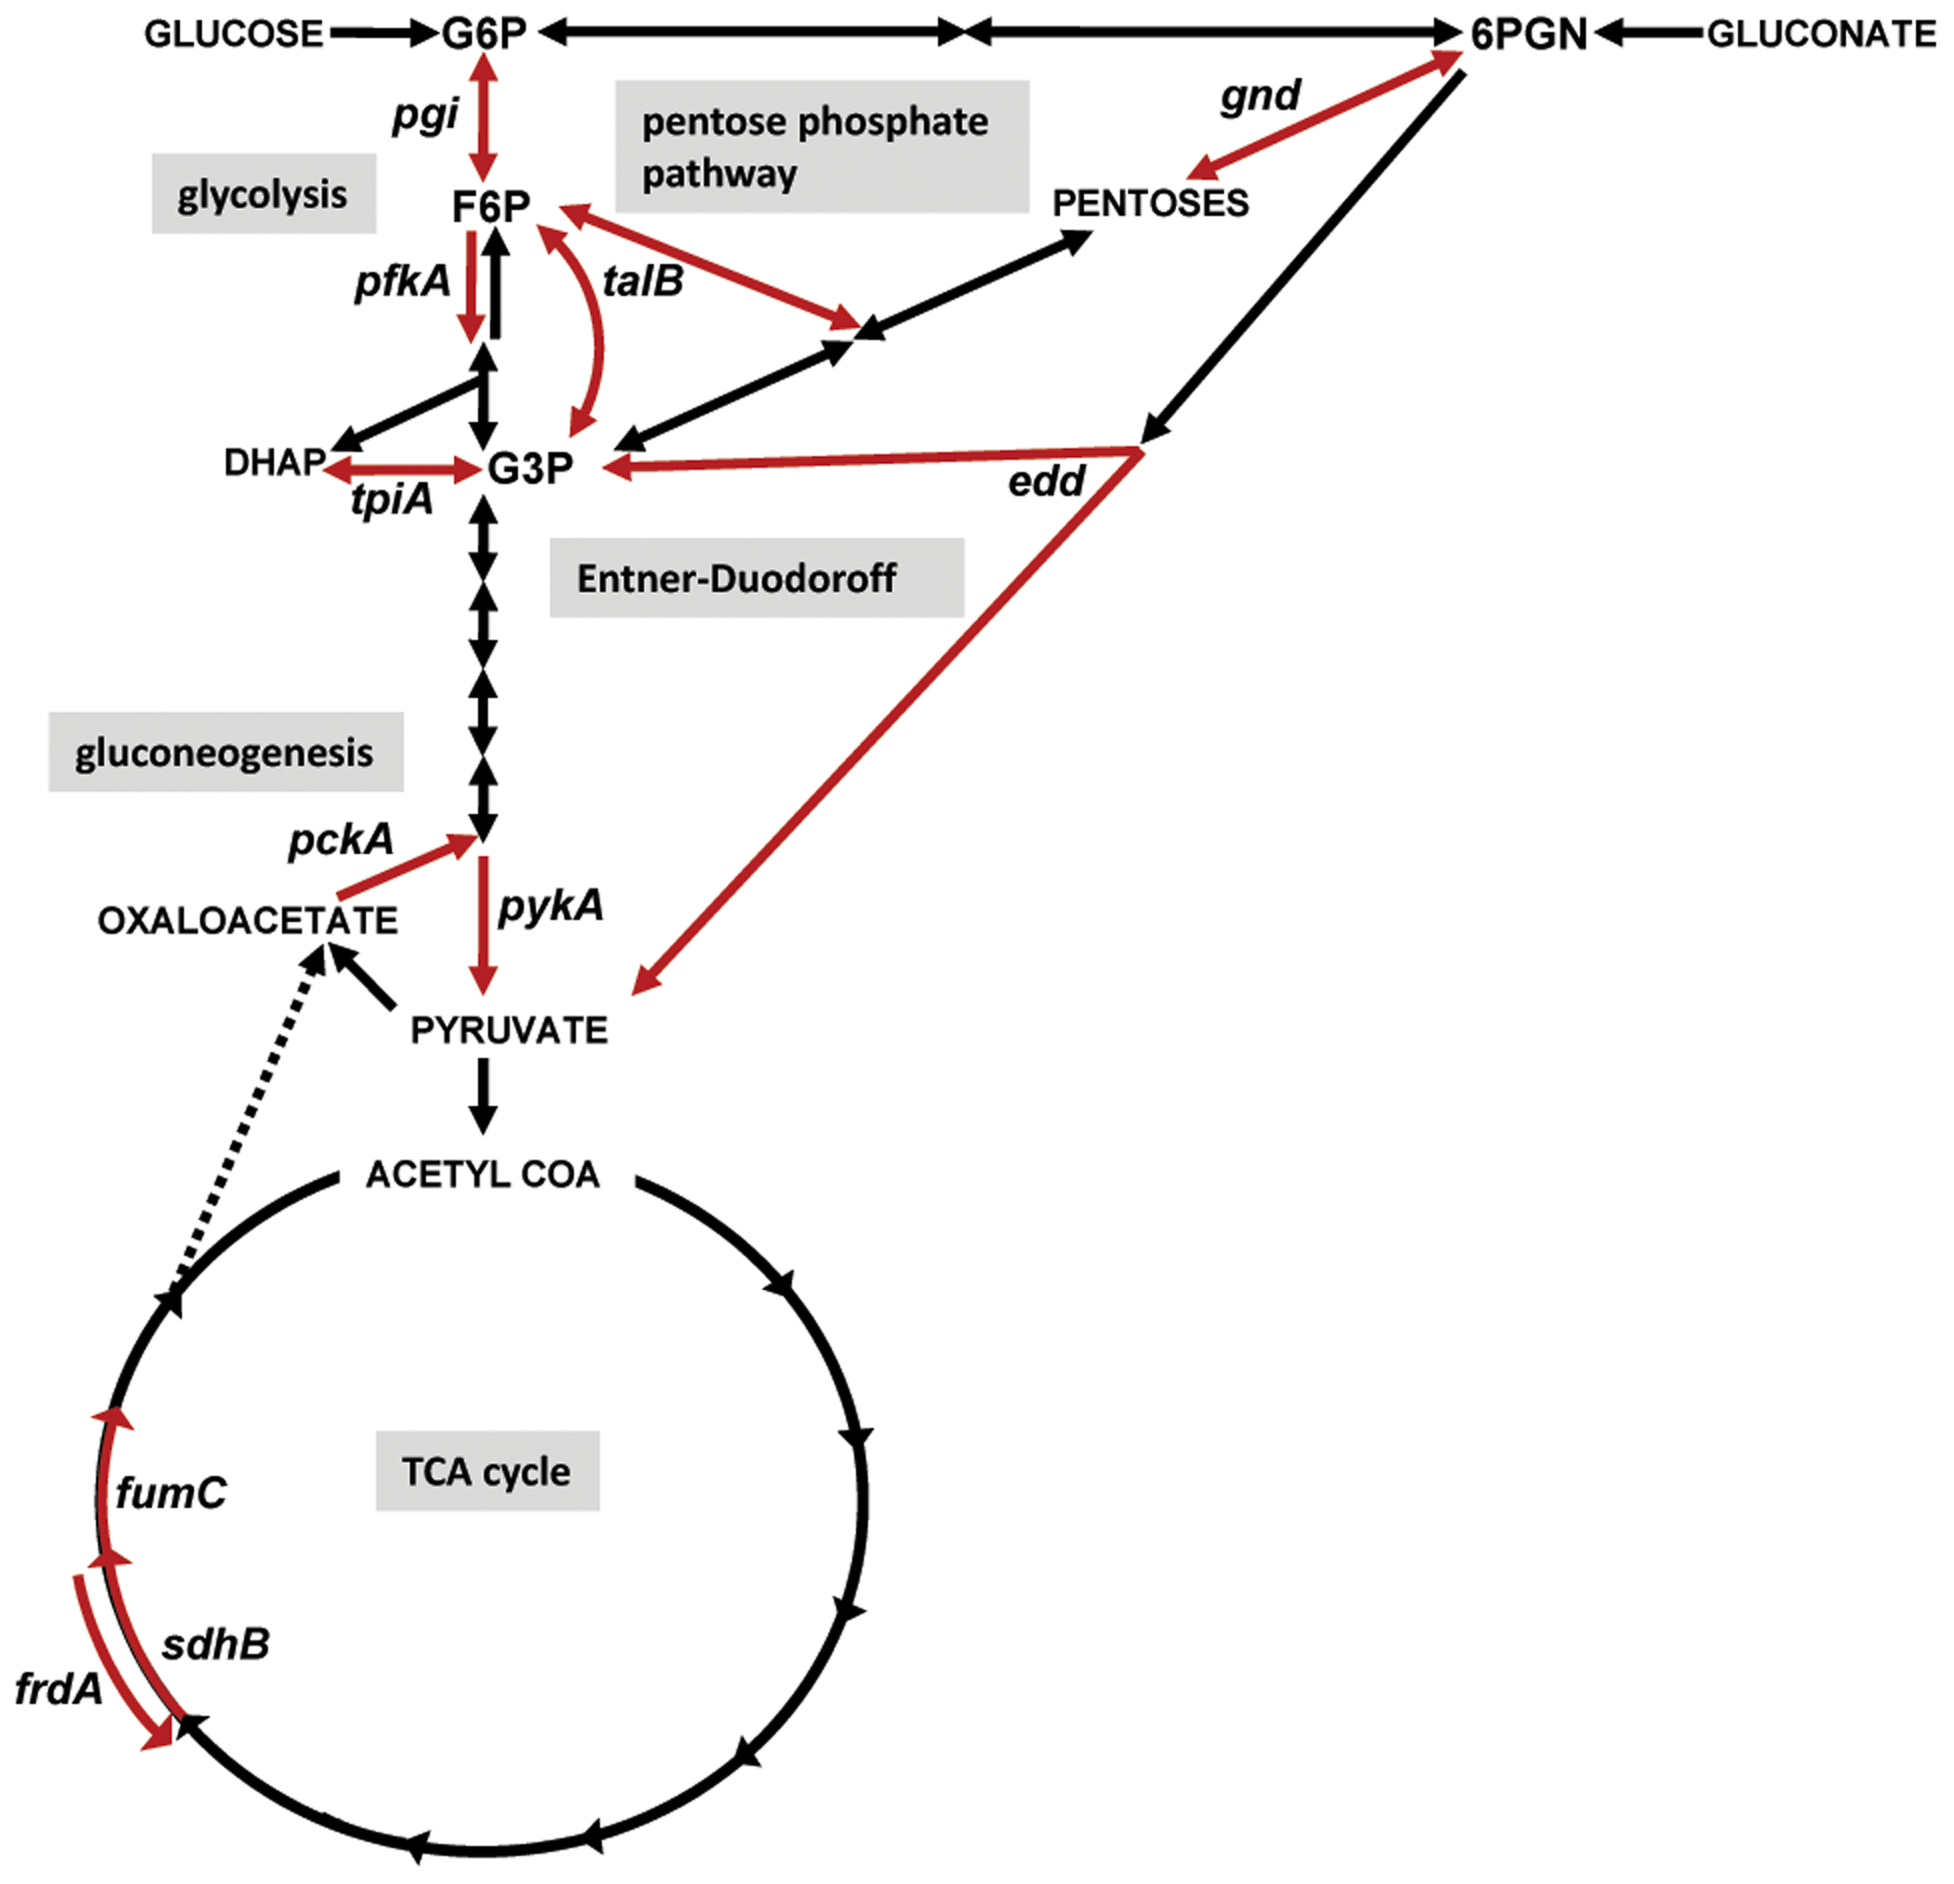 Diagram of central metabolism and map of the specific pathways disrupted by targeted mutations in uropathogenic <i>E. coli</i> and <i>P. mirabilis</i>.